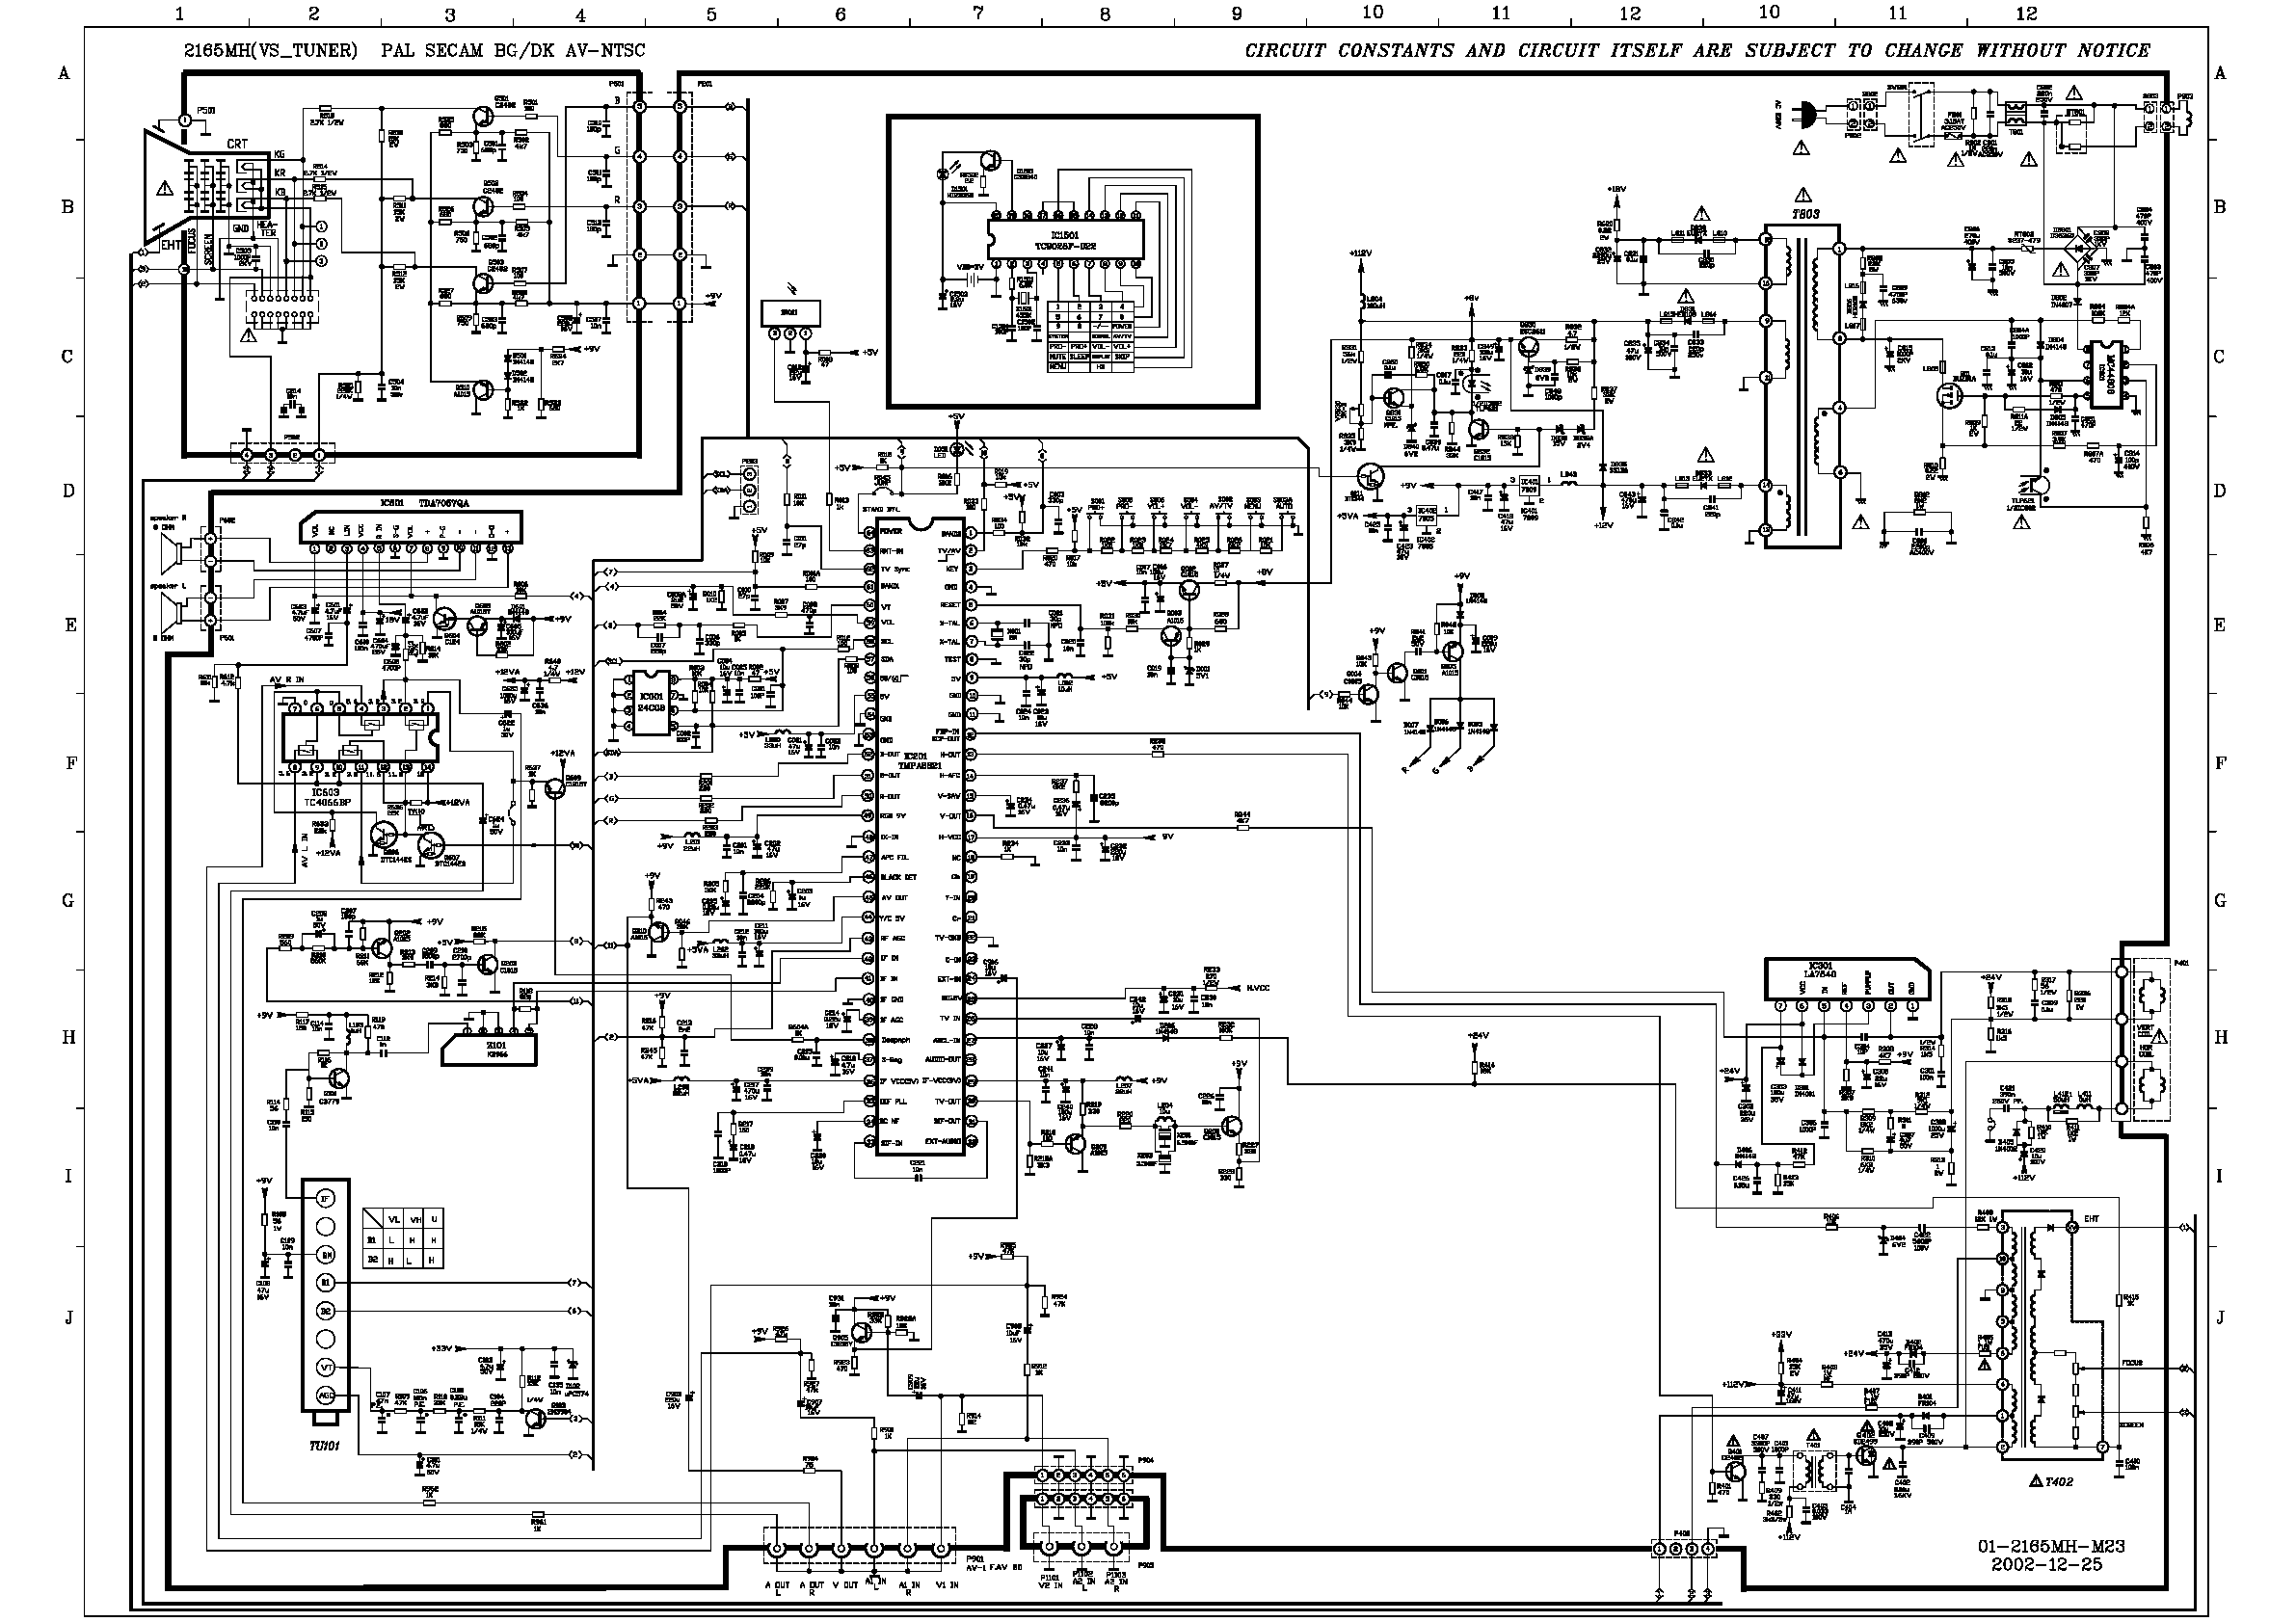 emerson tv schematics auto electrical wiring diagram. Black Bedroom Furniture Sets. Home Design Ideas